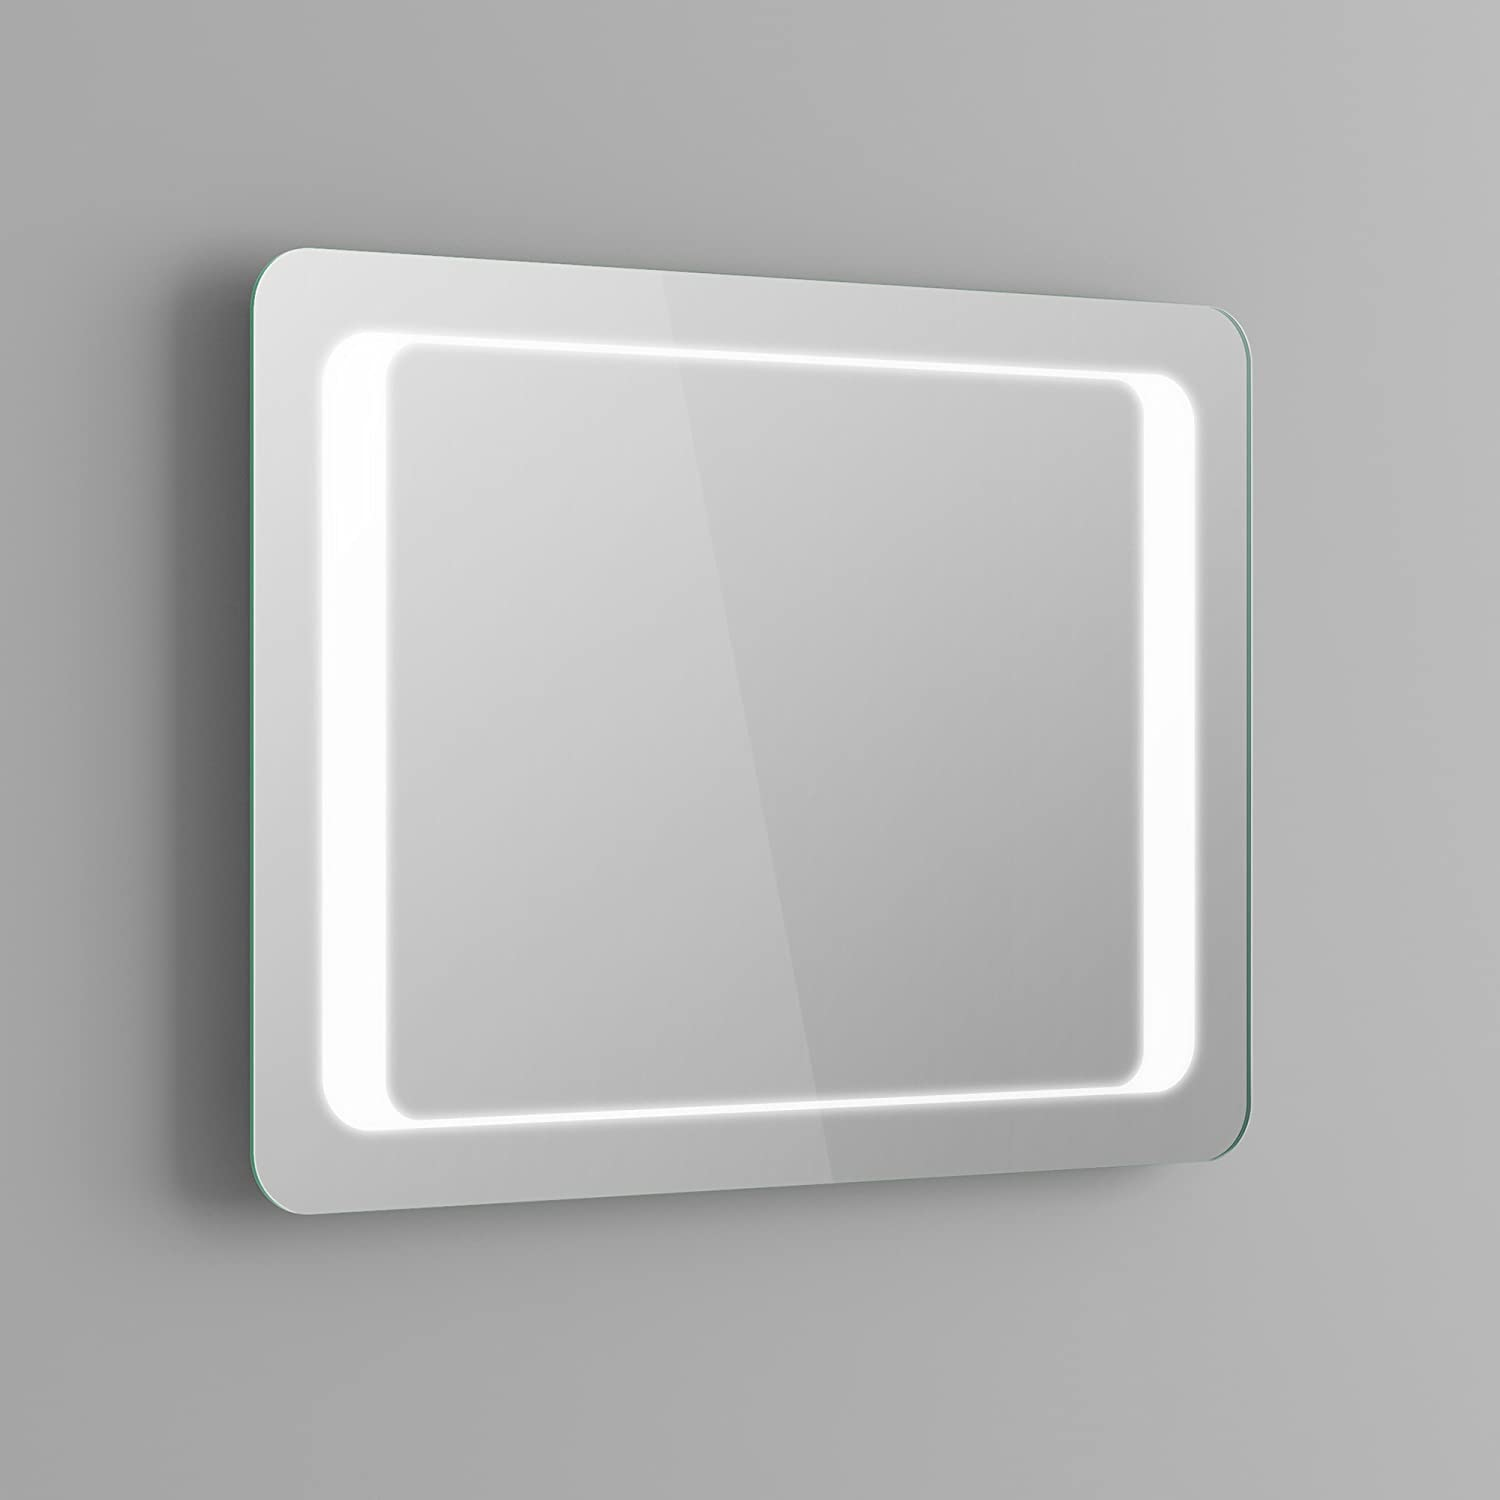 mirrors speaker bathroom roper beat illuminated bluetooth system mirror x with led rhodes